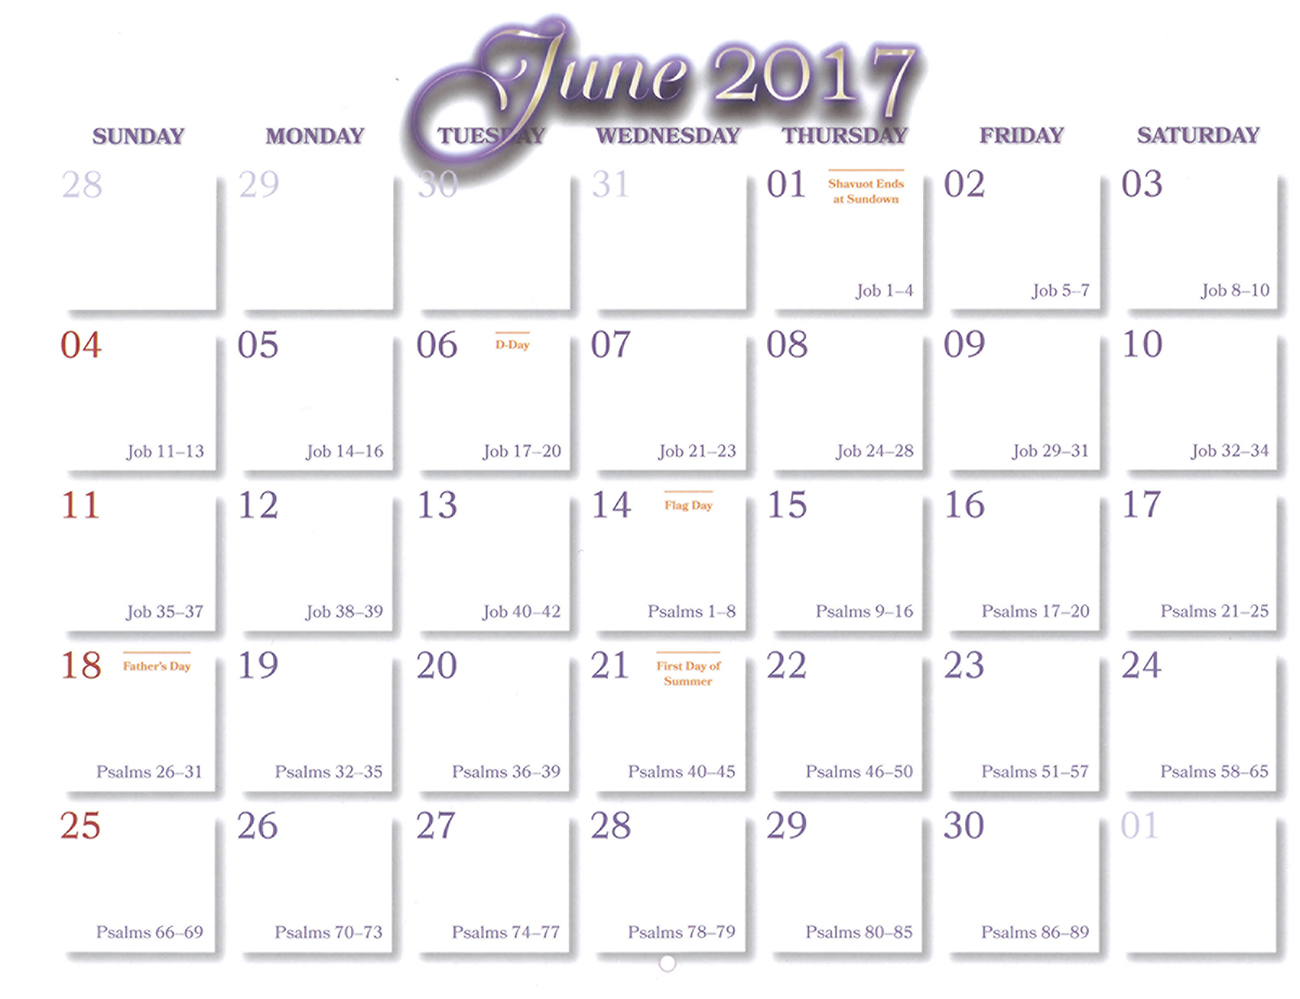 2016 Prophecy Calendar: June - Calendar